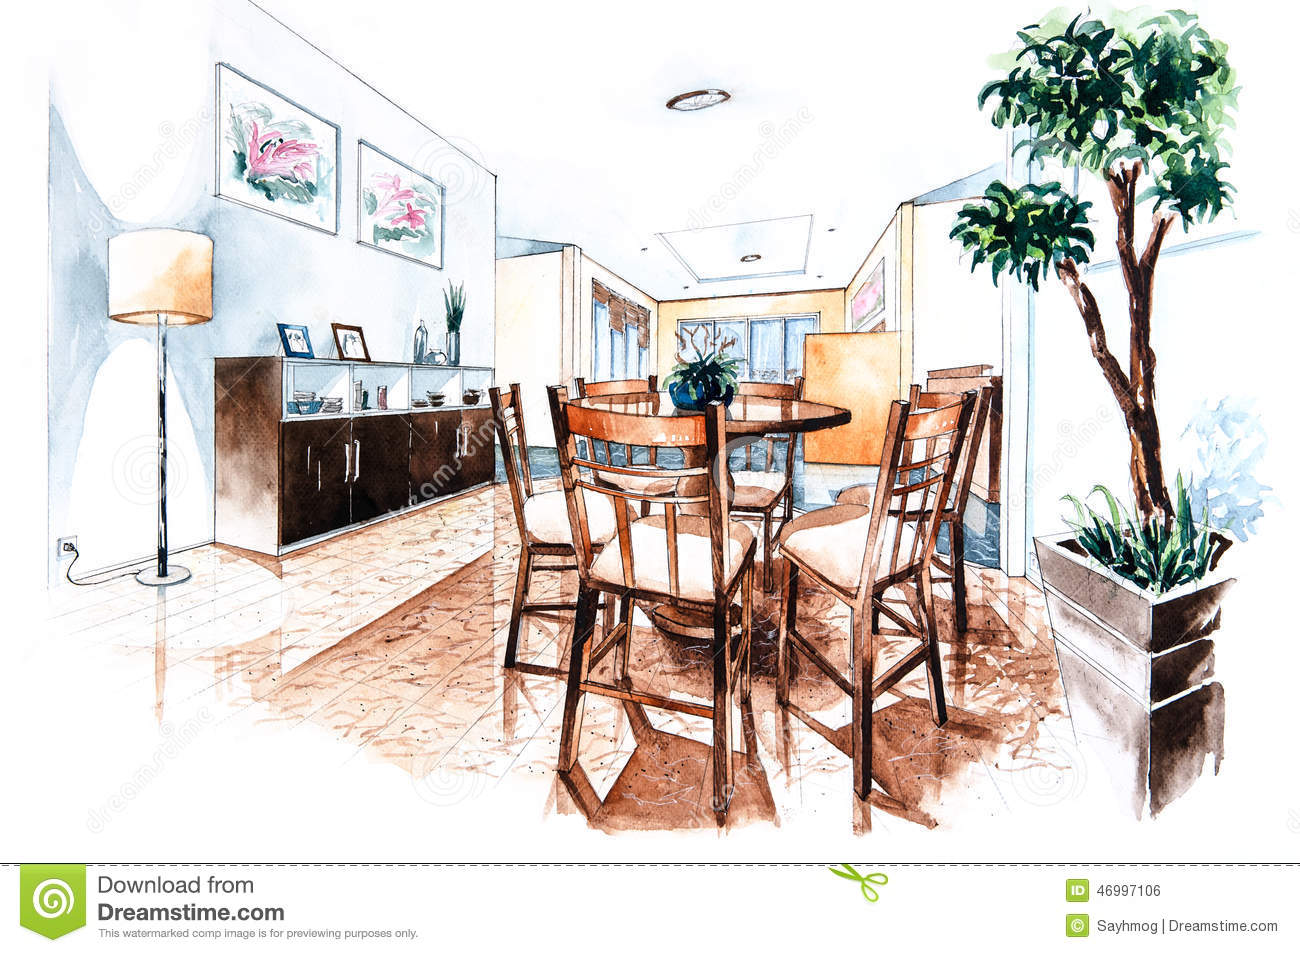 Dining room perspective drawing - Design Dining Painting Paper Room Watercolor White Perspective